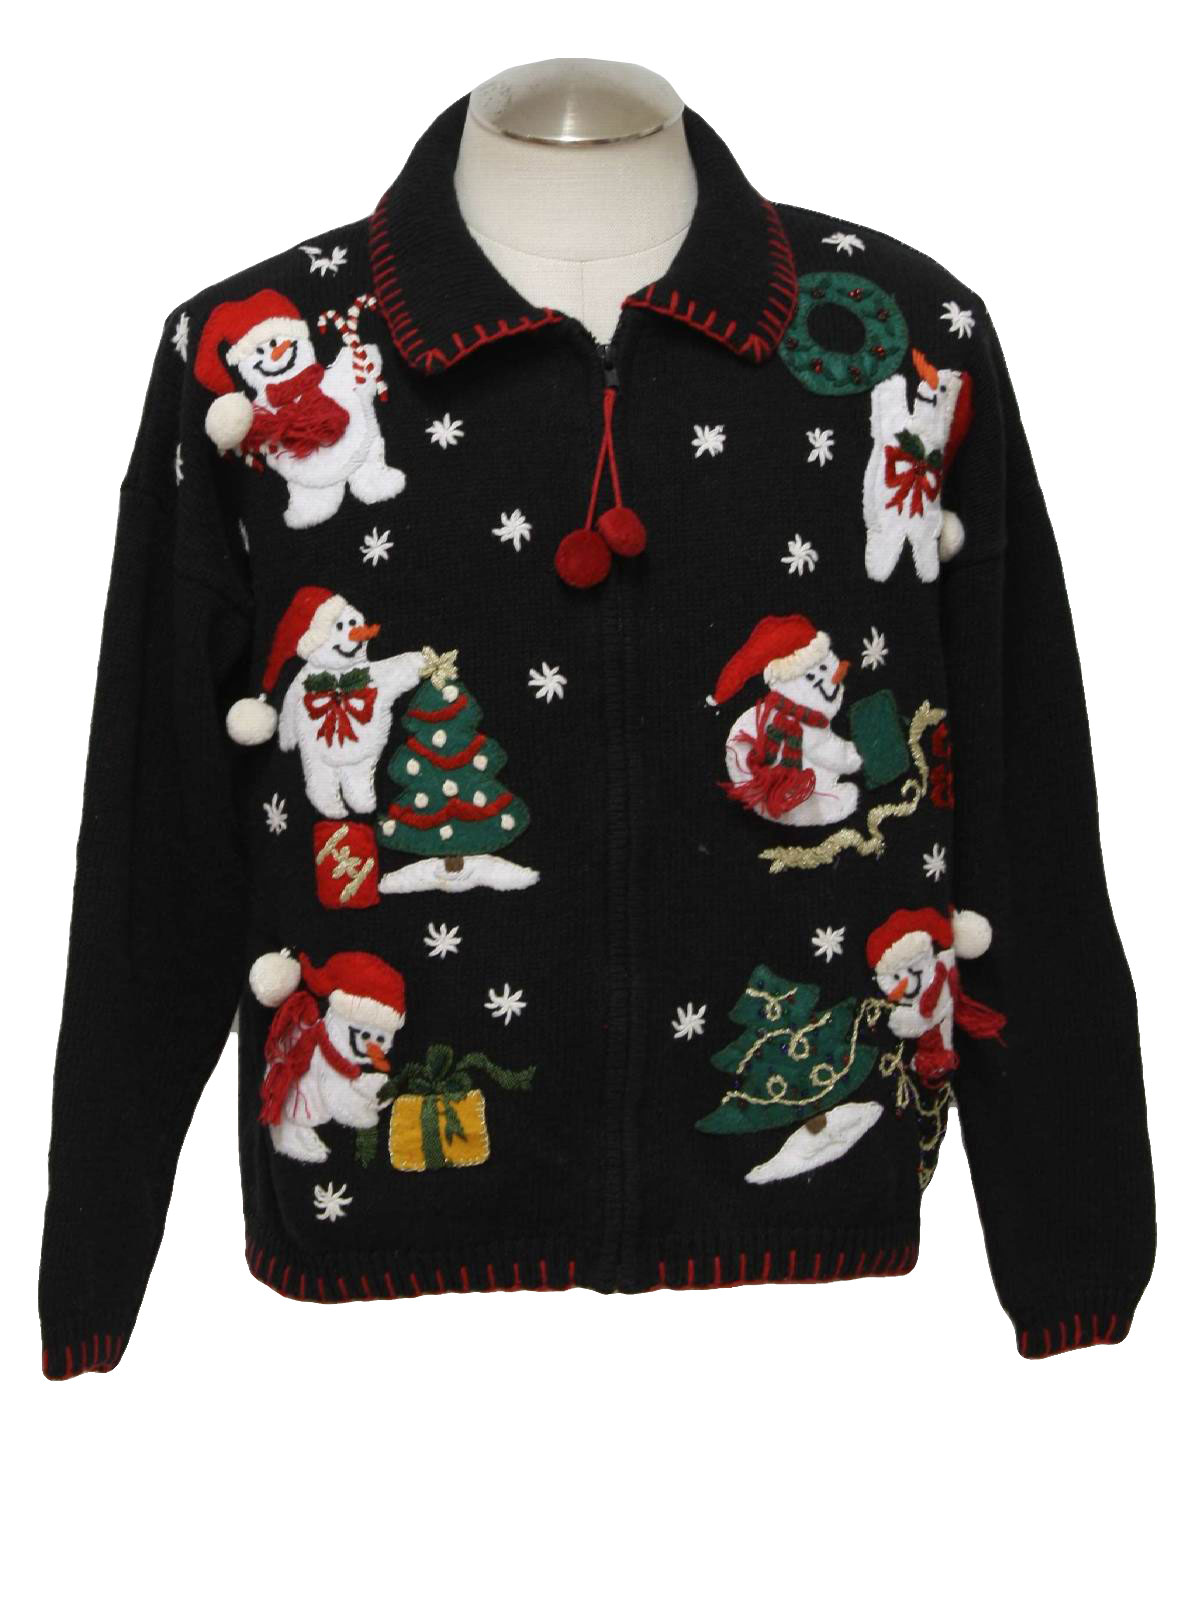 Womens Ugly Christmas Sweater Heirloom Collectables